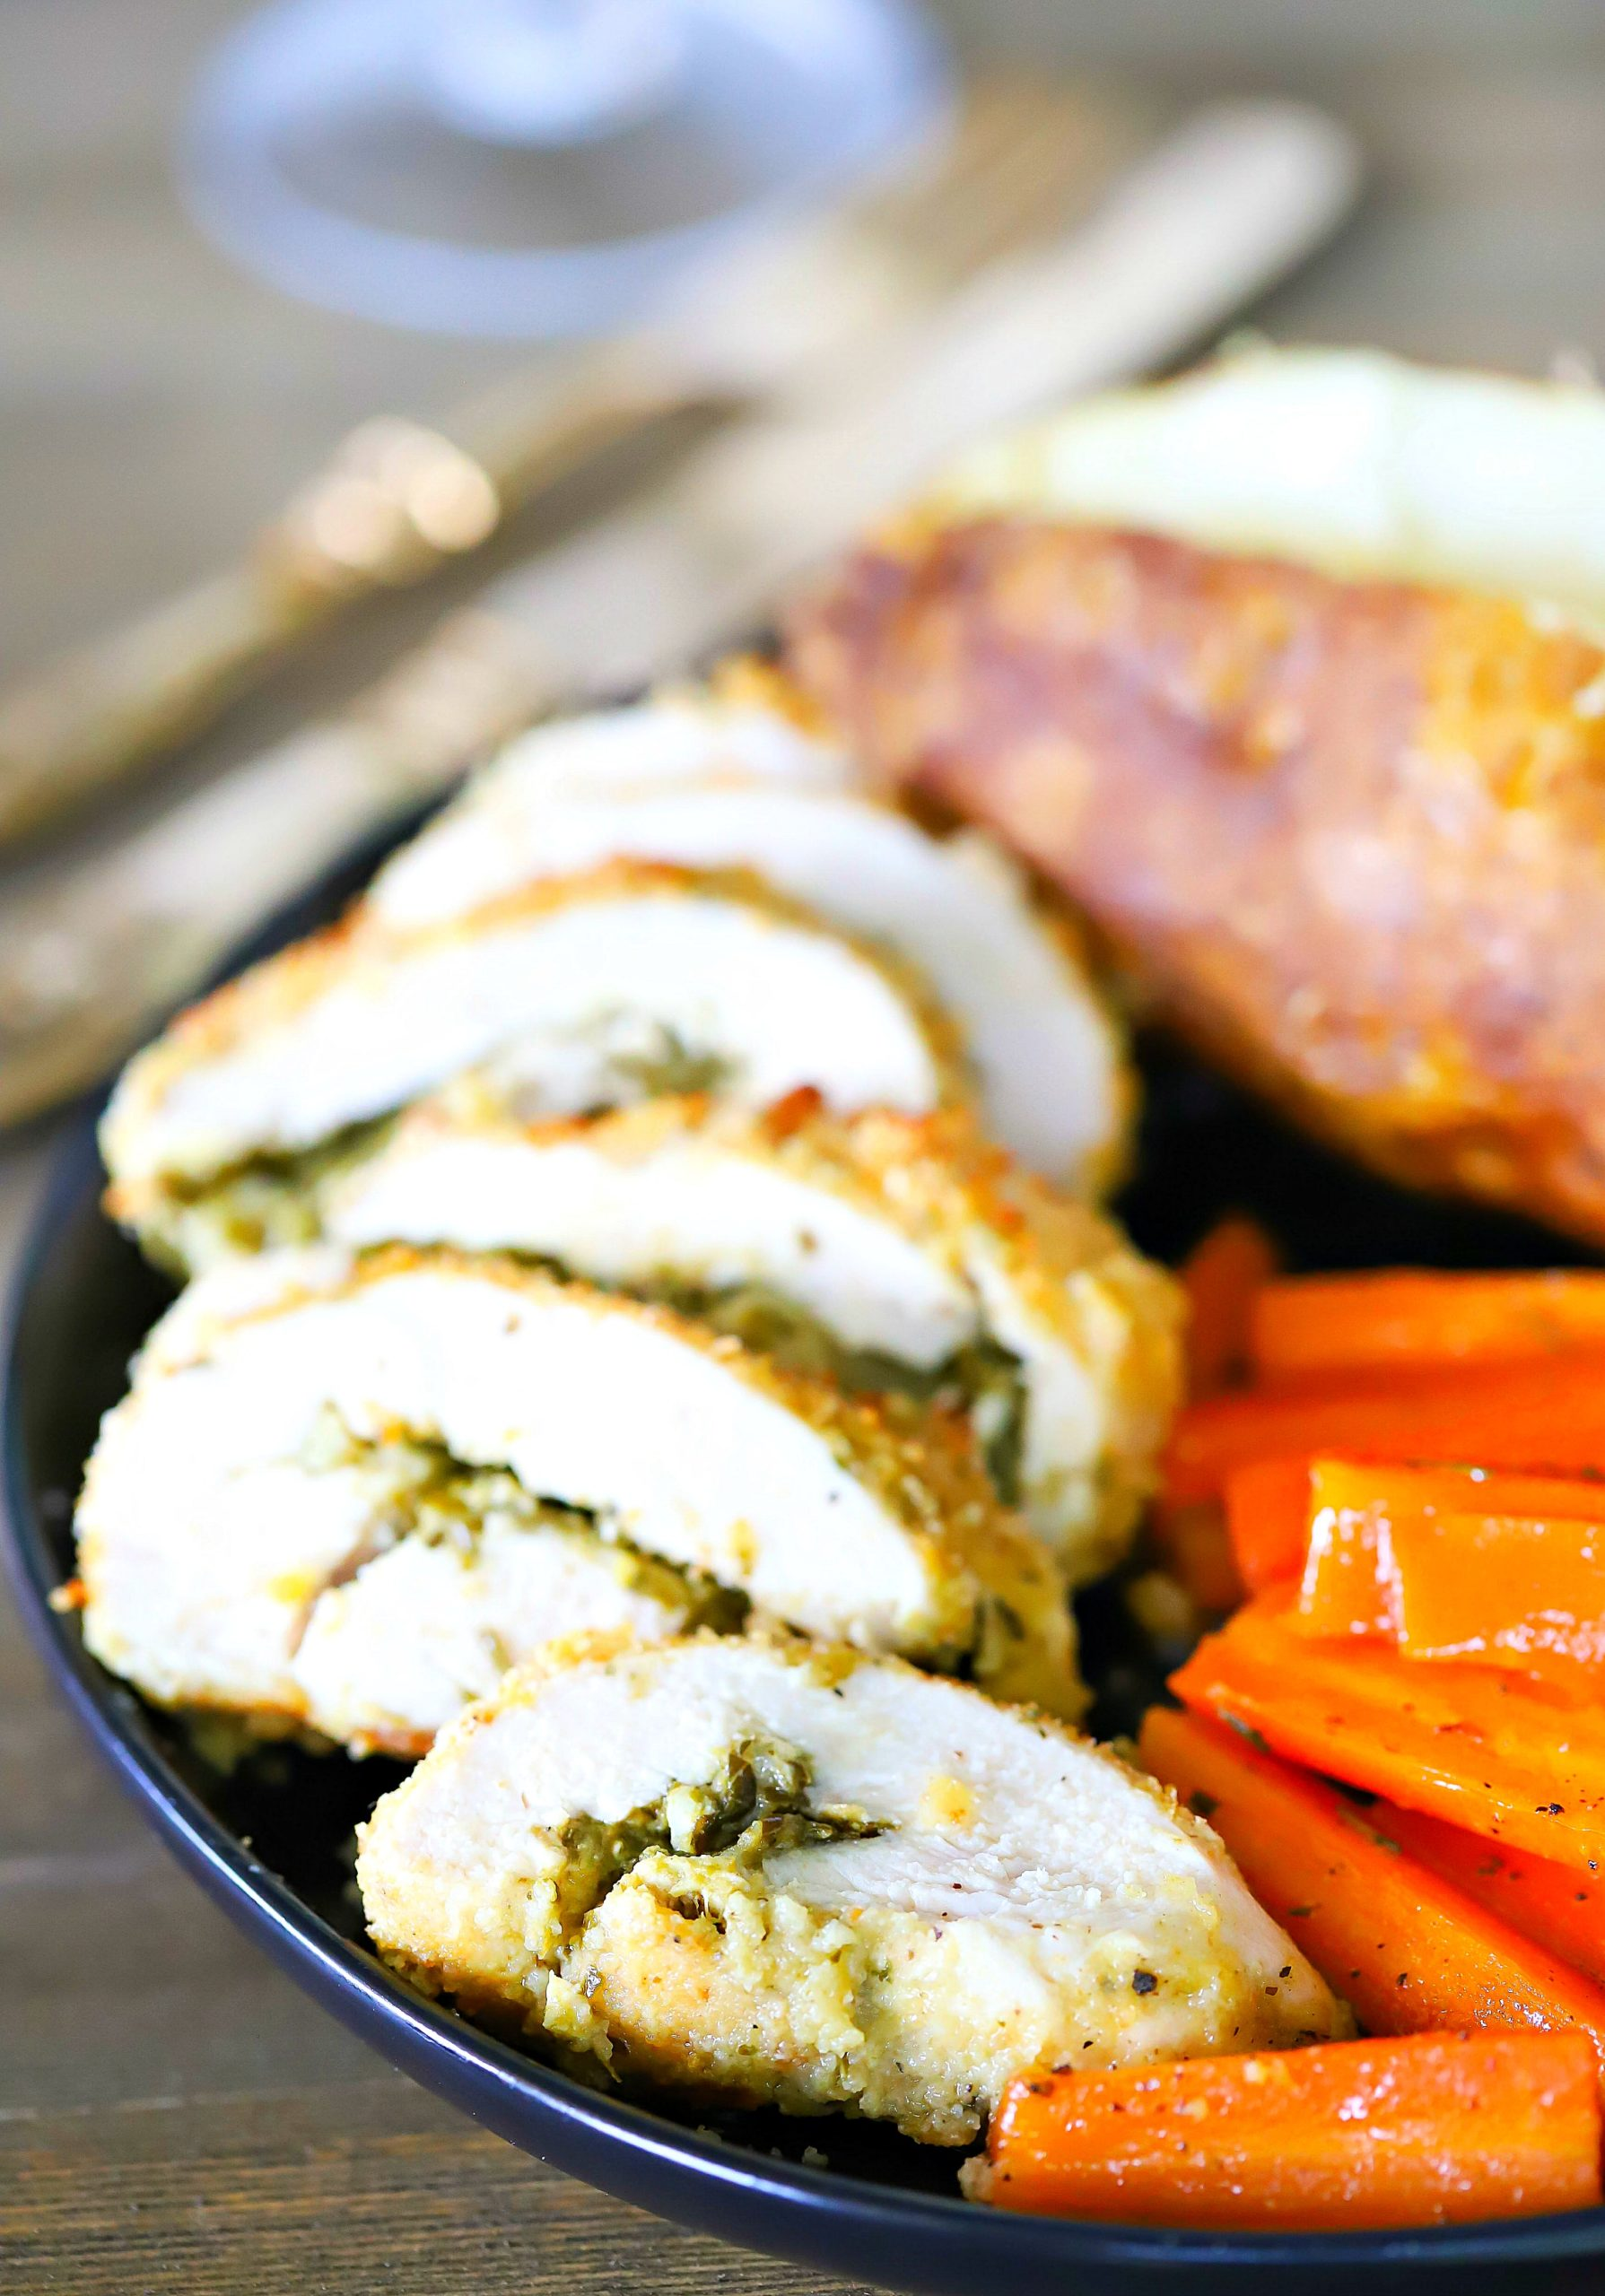 Sliced Pesto Stuffed Chicken on a black plate with a side of carrots